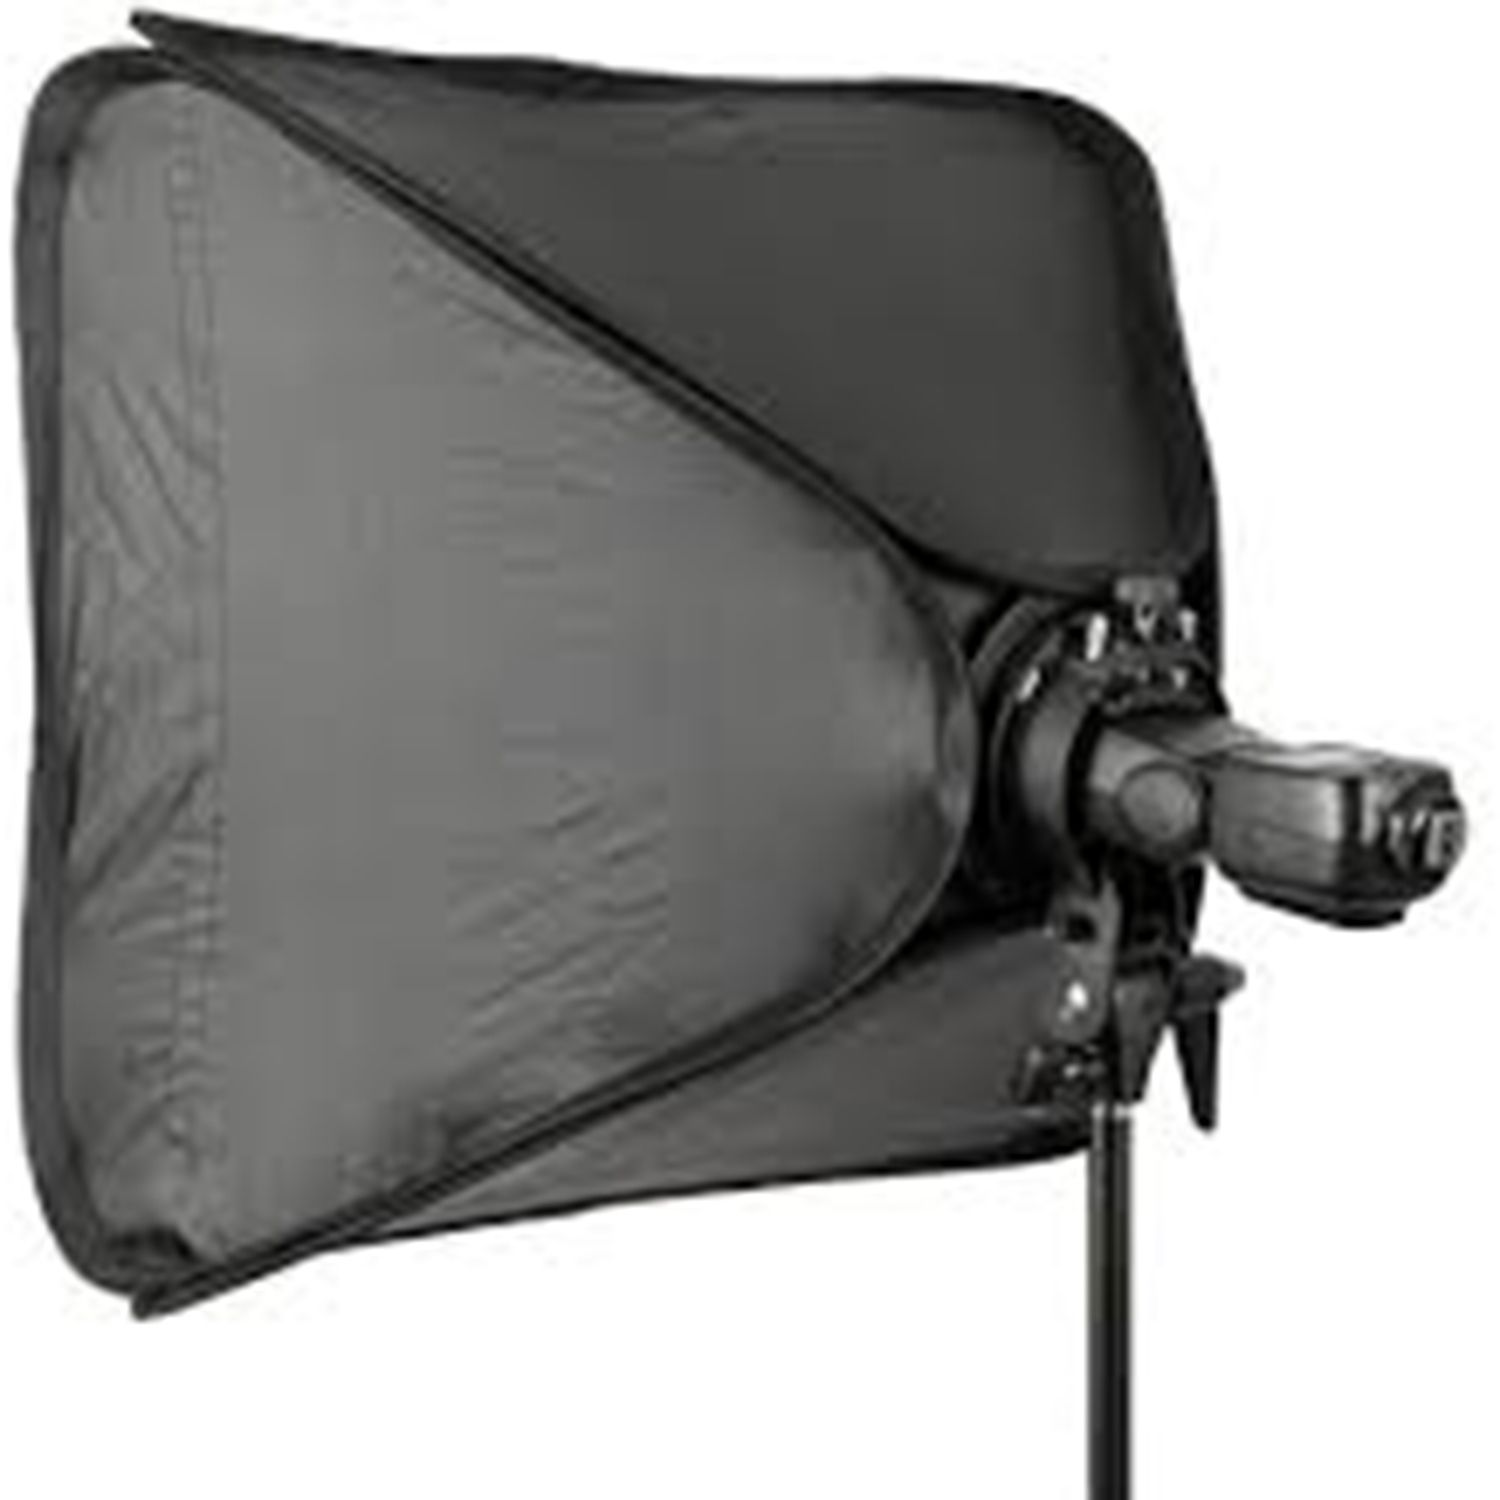 Softbox P/ Flash Speedlight 80x80 Godox / Dobravel